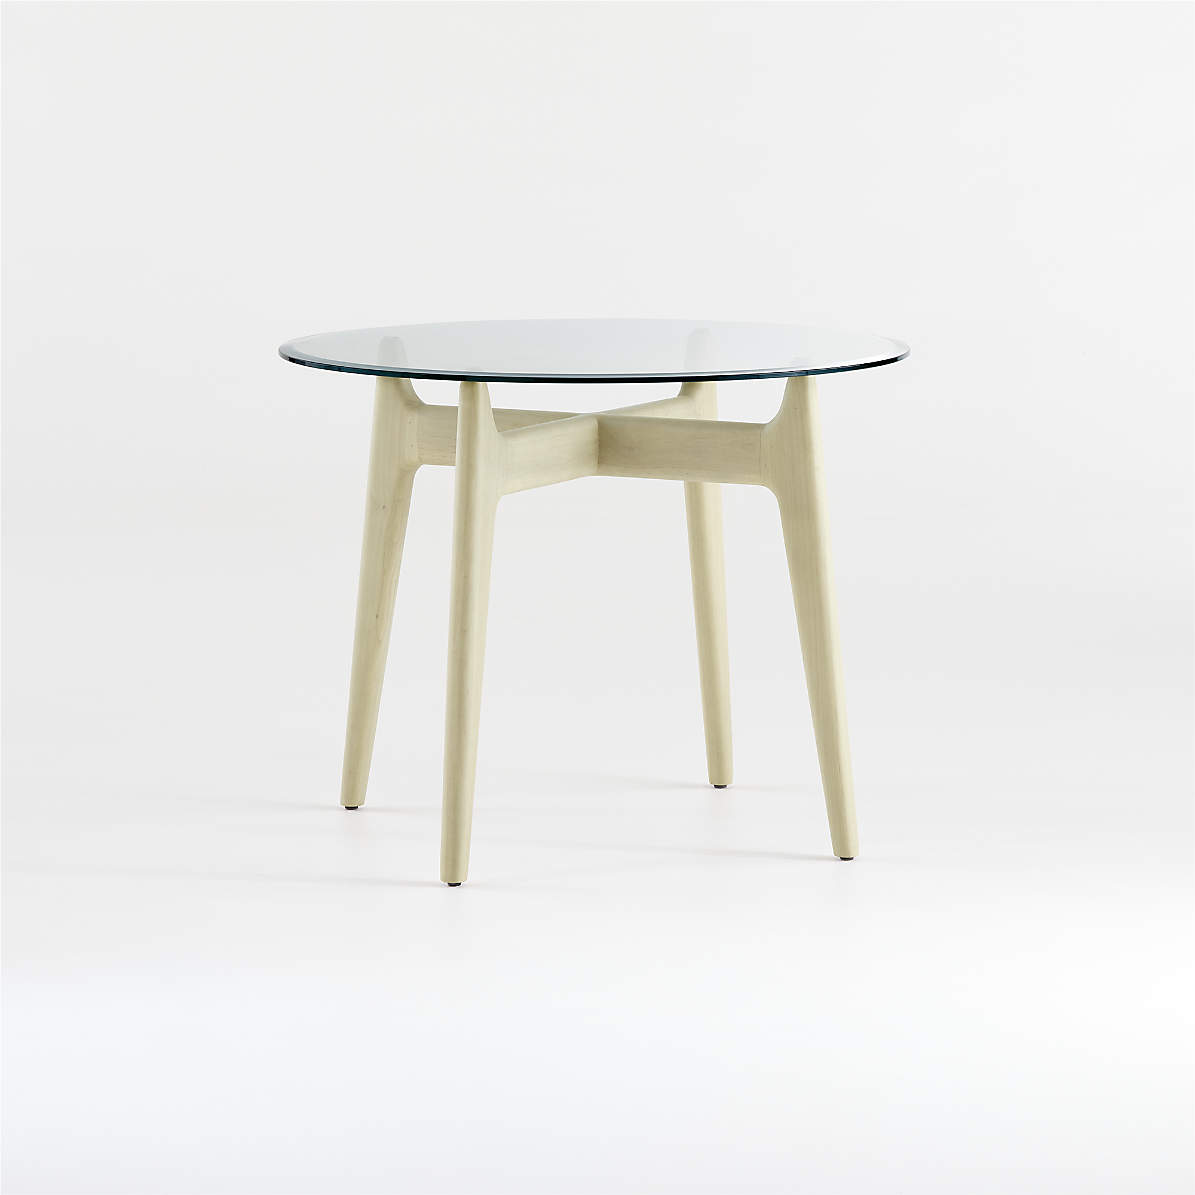 Tate 38 Round Dining Table With Glass Top And Sand Base Reviews Crate And Barrel